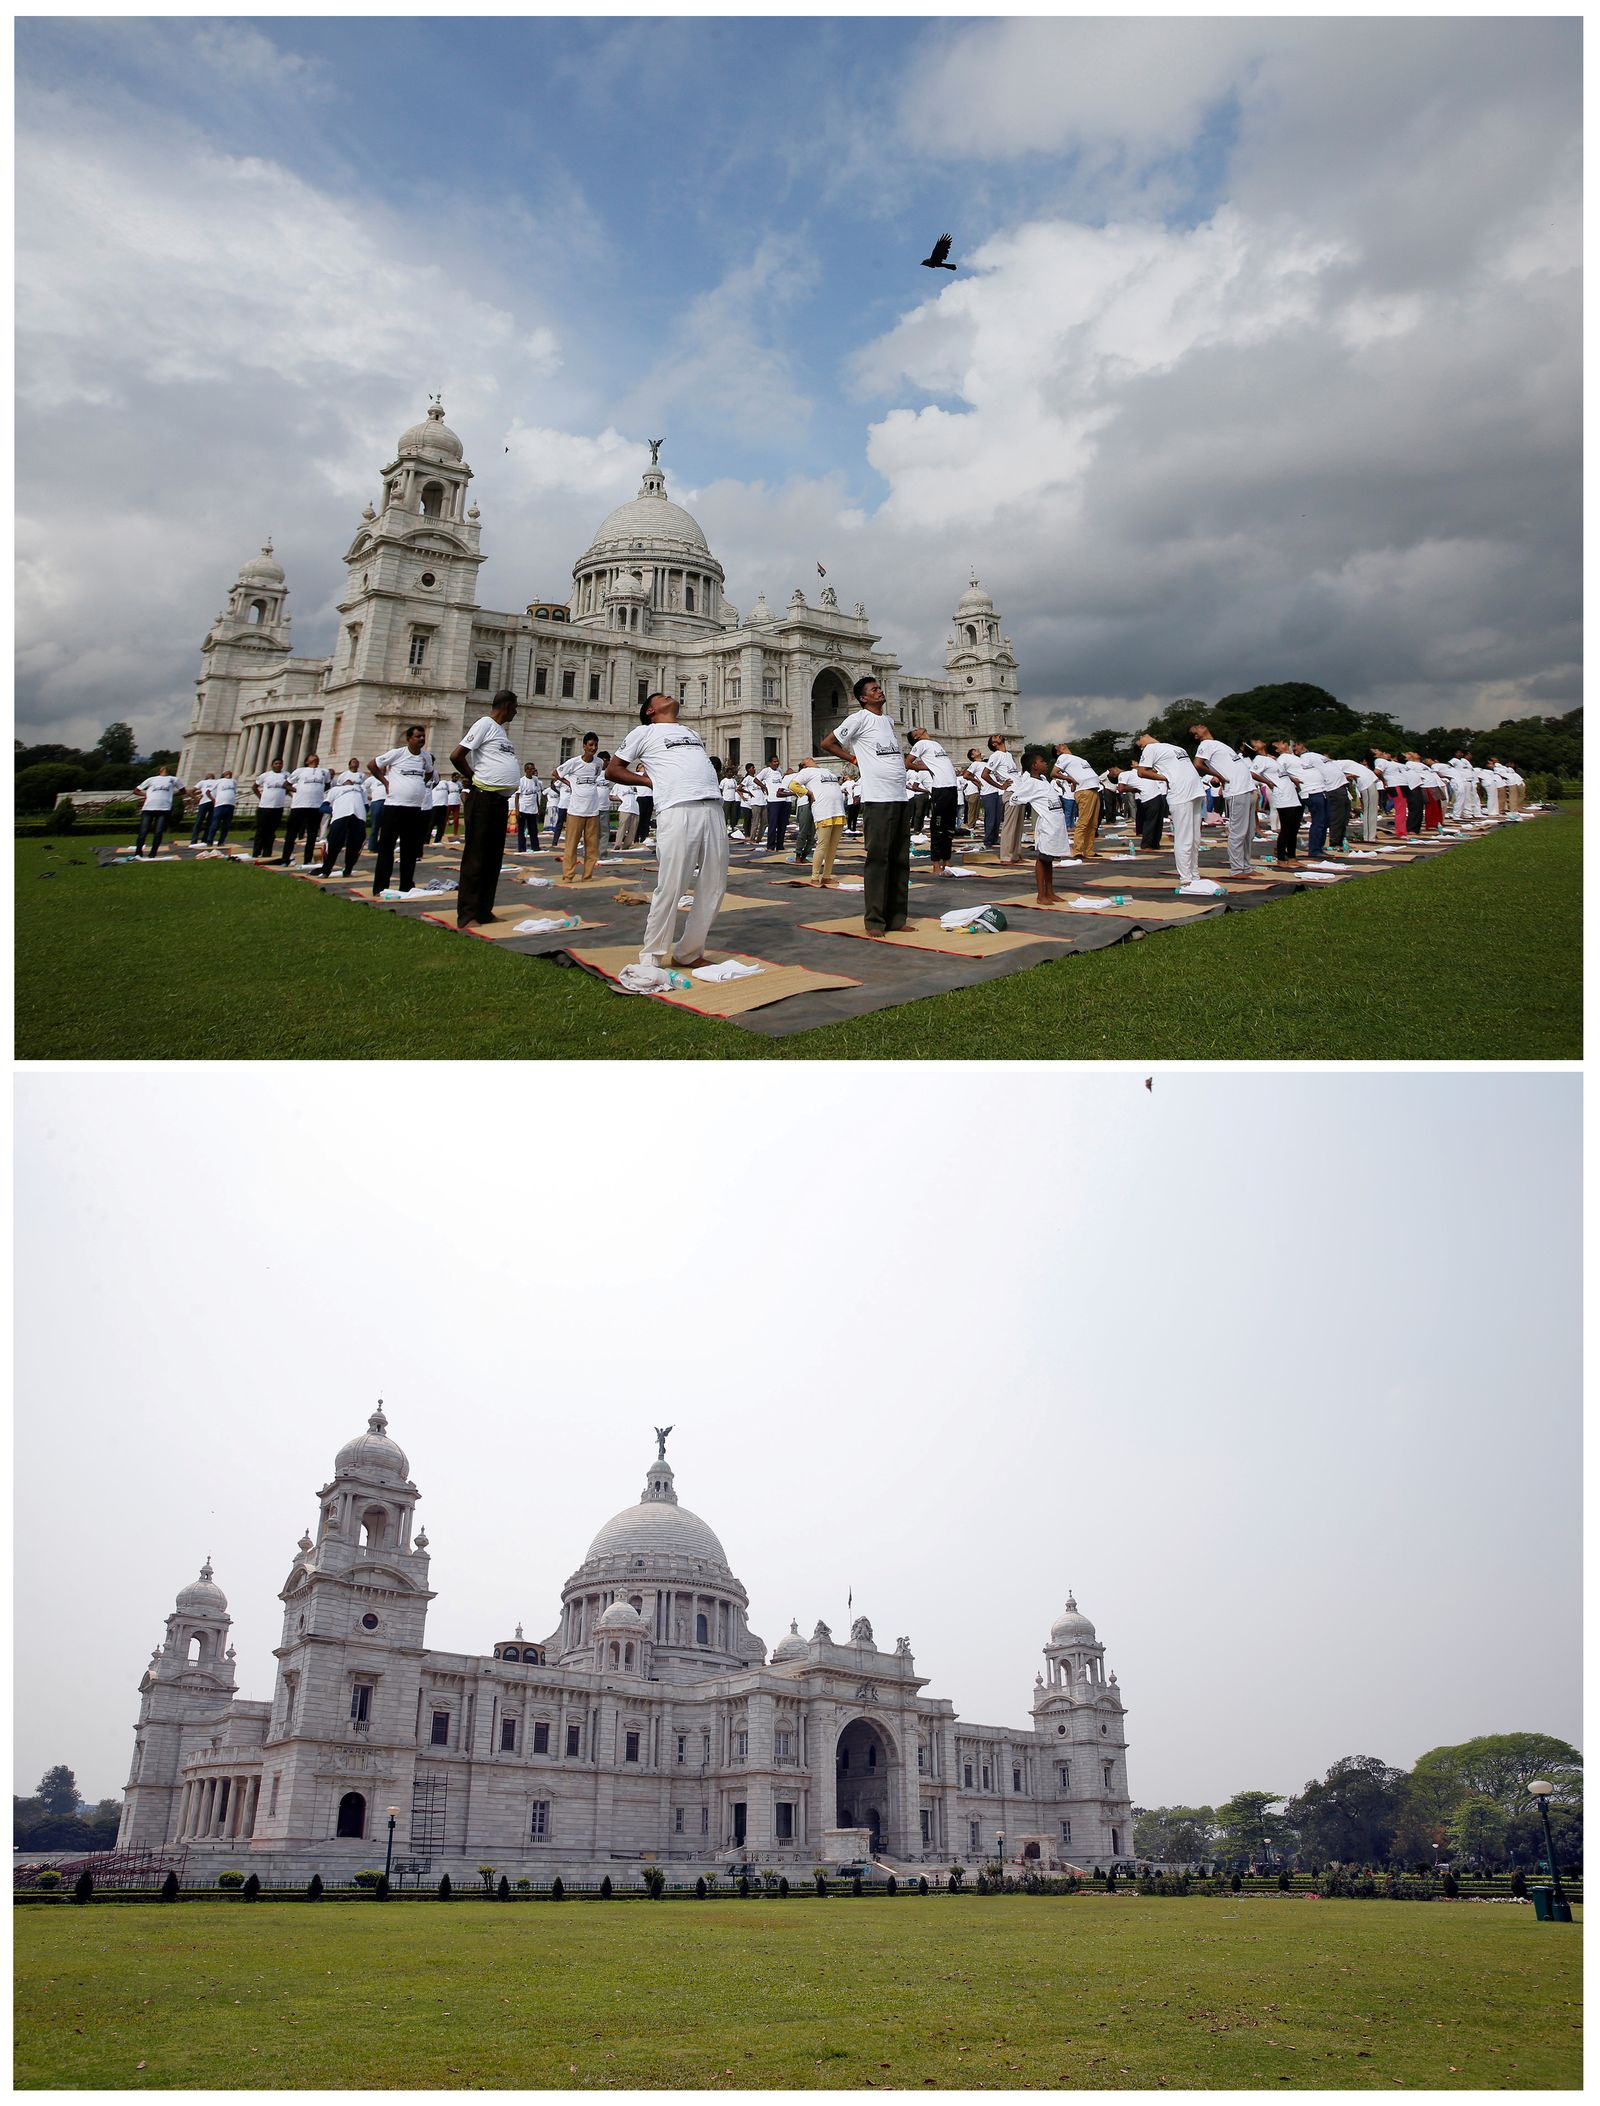 A combination picture shows the historic Victoria Memorial monument